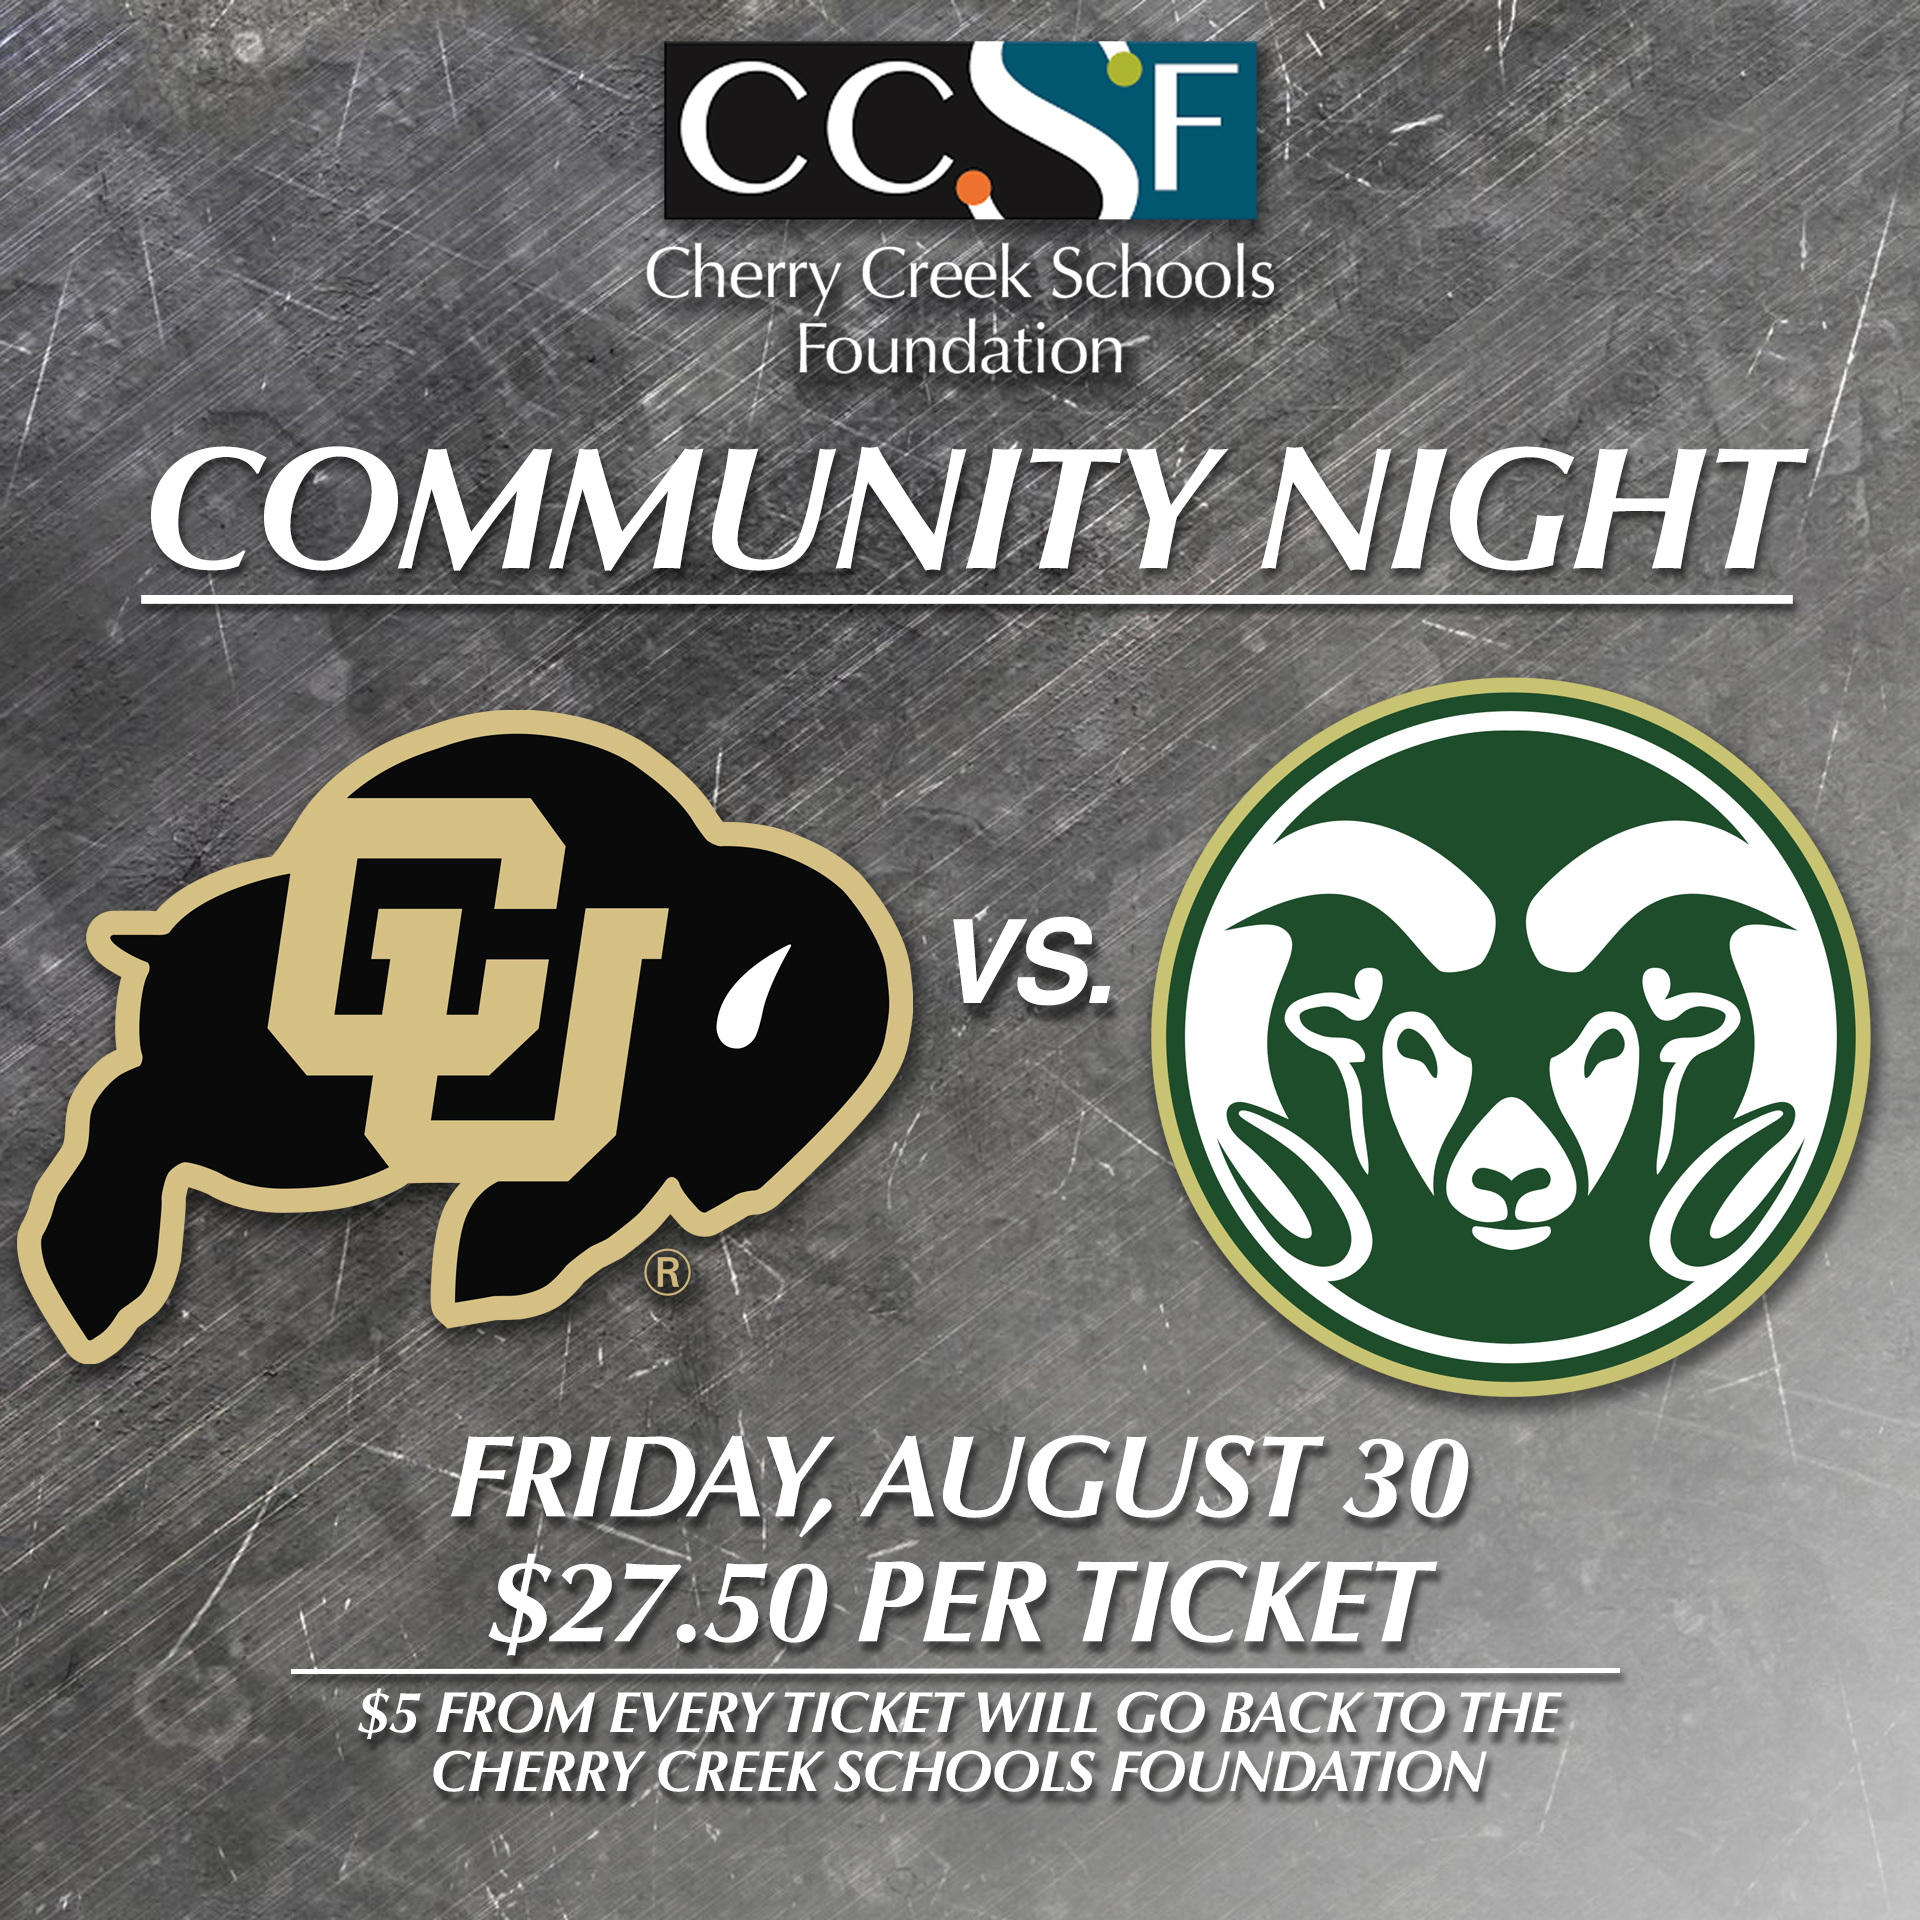 Come to a Community Night!